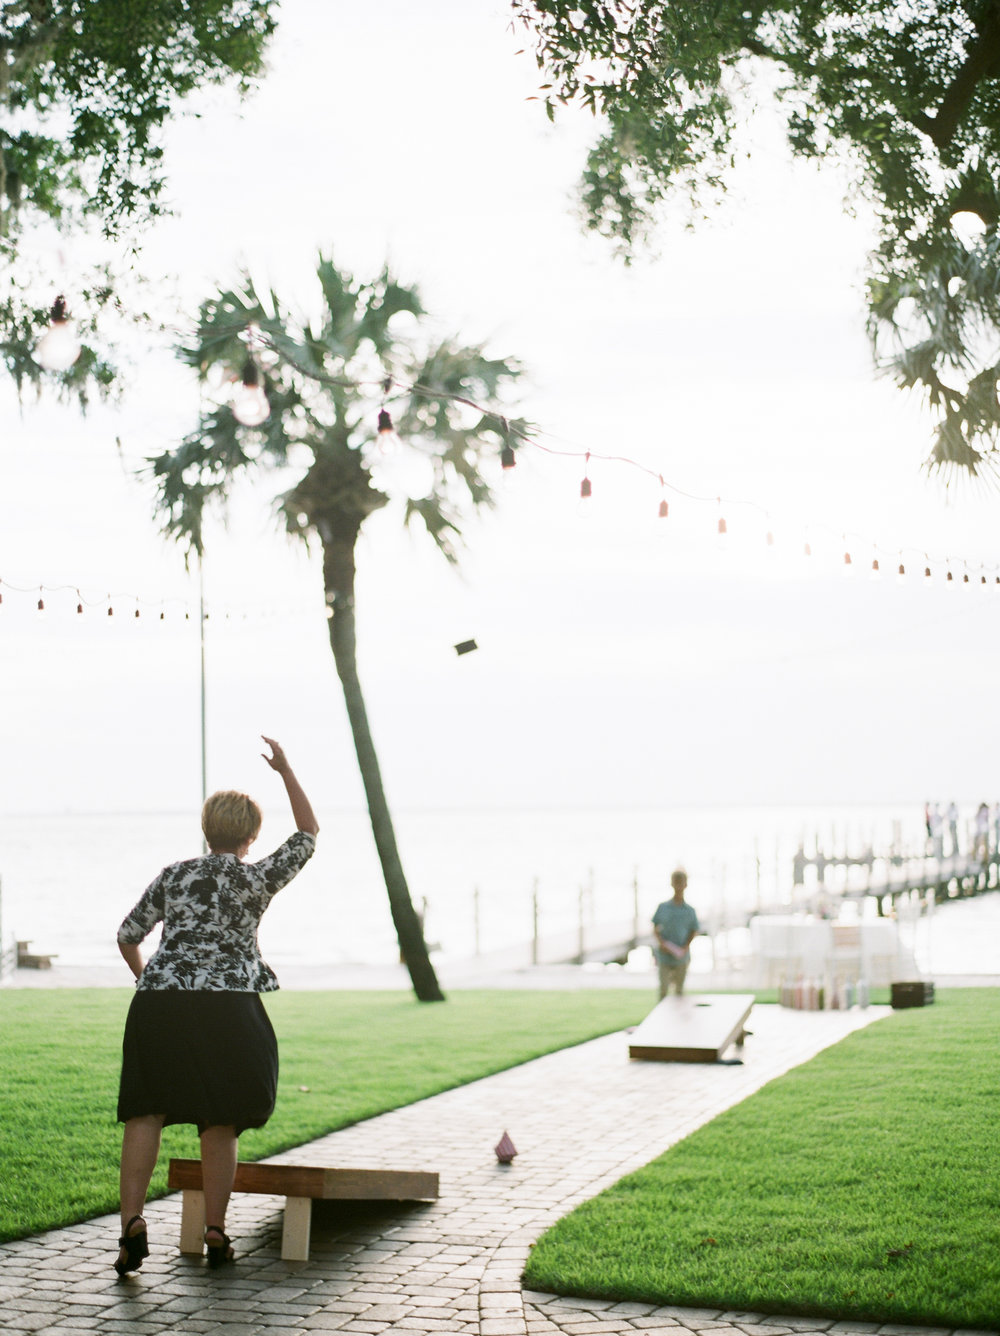 destin-fl-wedding-photographers-kayliebpoplin